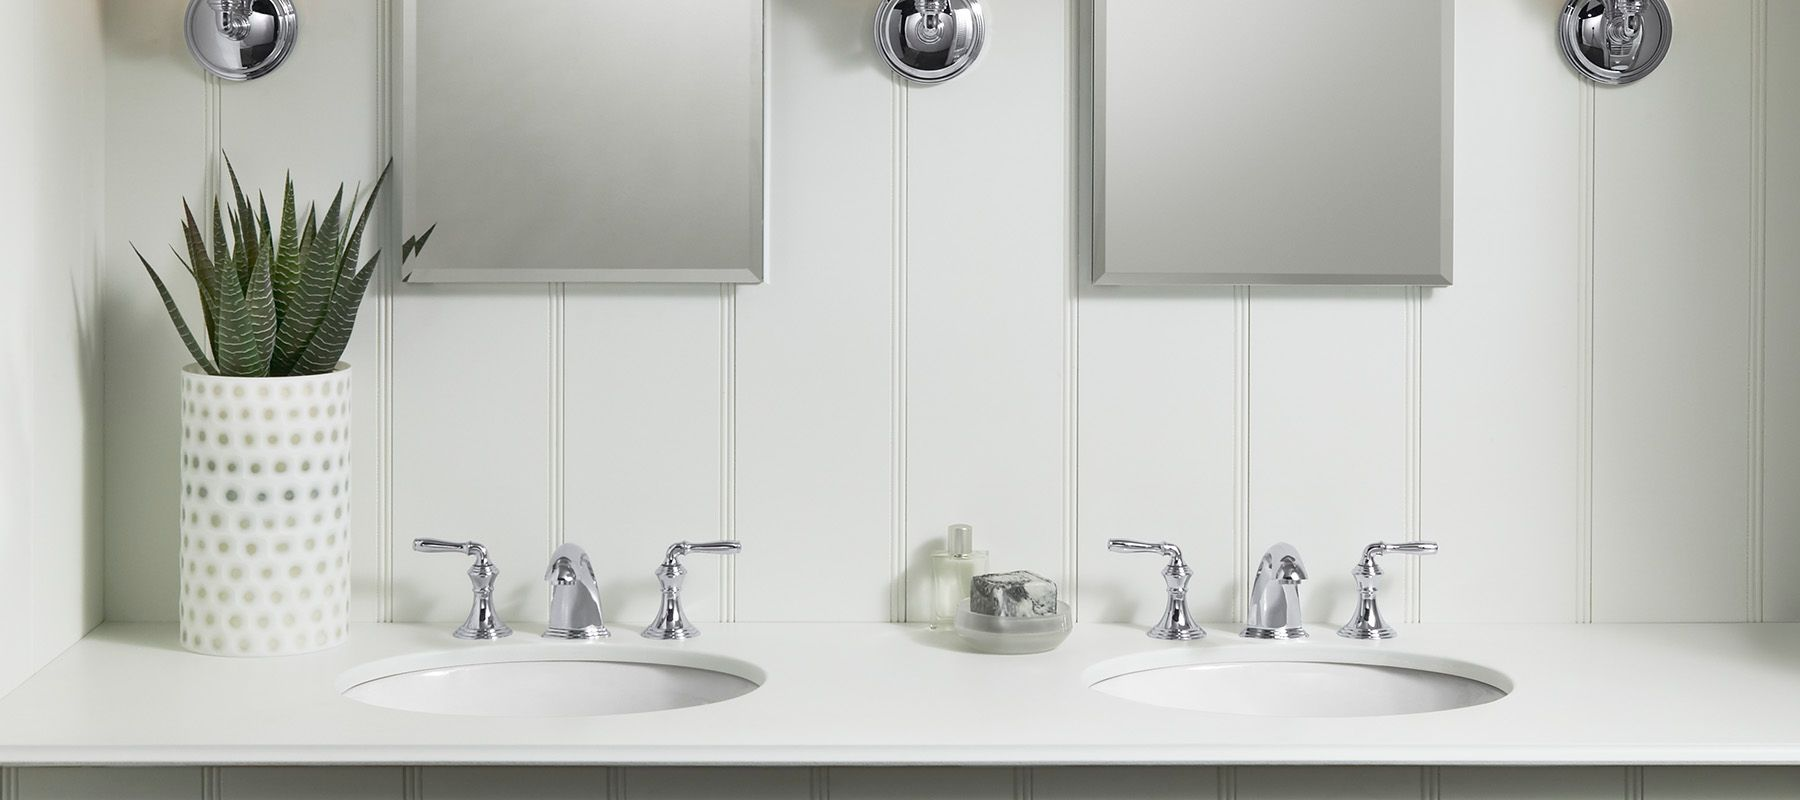 Bathroom Sinks That Mount On The Wall wall-mount bathroom sinks | bathroom | kohler